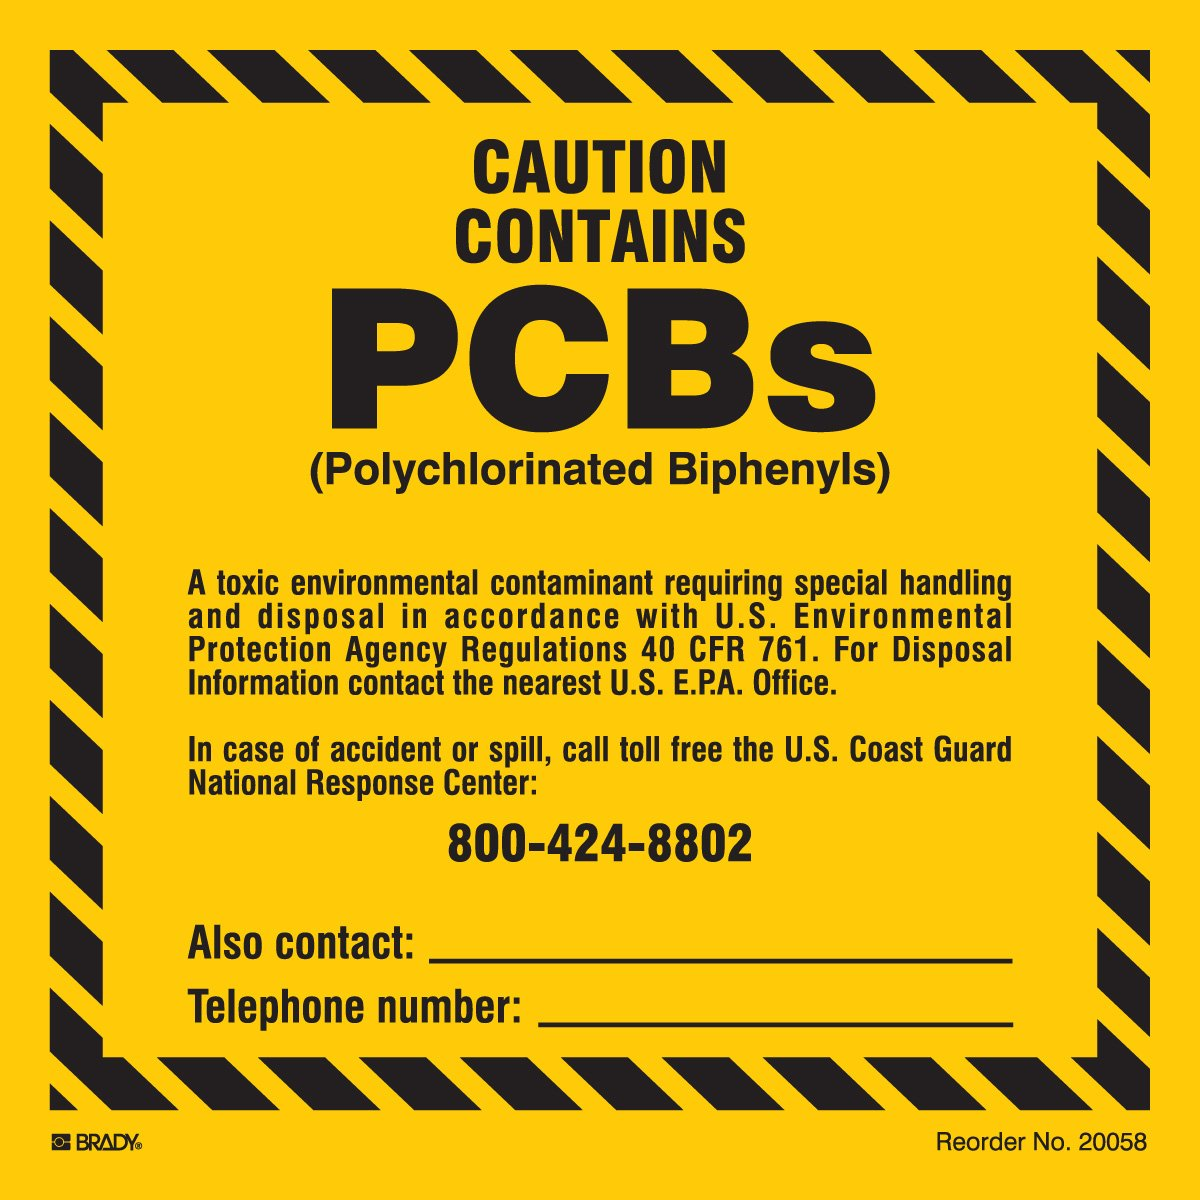 Brady 20058LS Chemical Biohazard and Hazardous Material Labels Pack of 10 Economy 6 x 6 6 x 6 Brady Polyester Drop Ship Black On Yellow